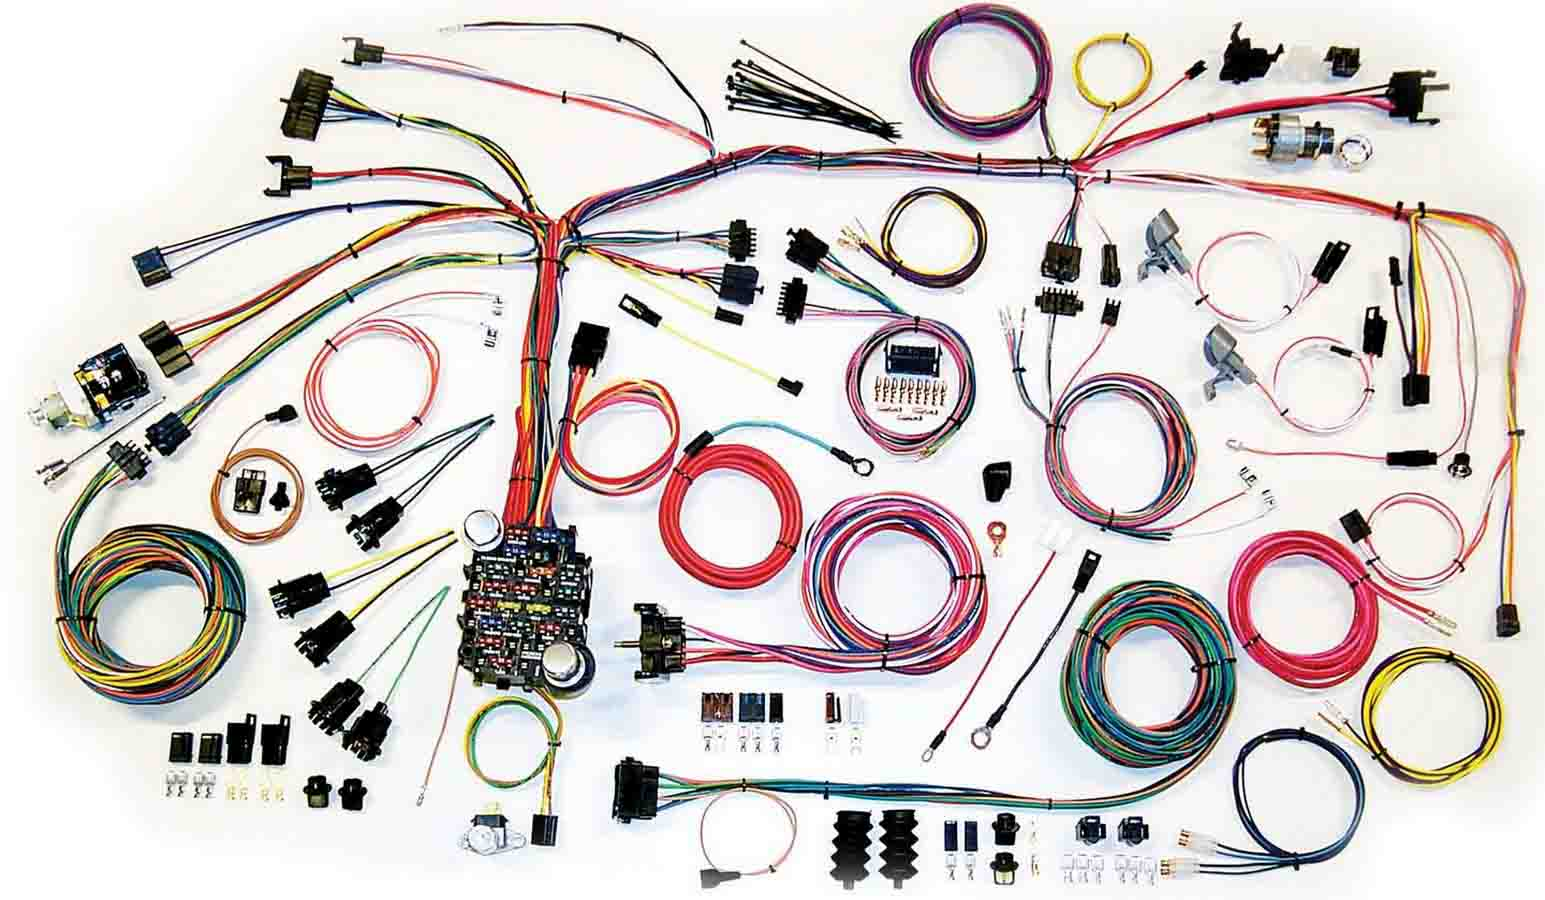 66 Chevy Truck Wiring Harness Kit Schematic Diagrams Painless F350 Kit66 Shop For Harnesses Etheridge Race Parts Diagram